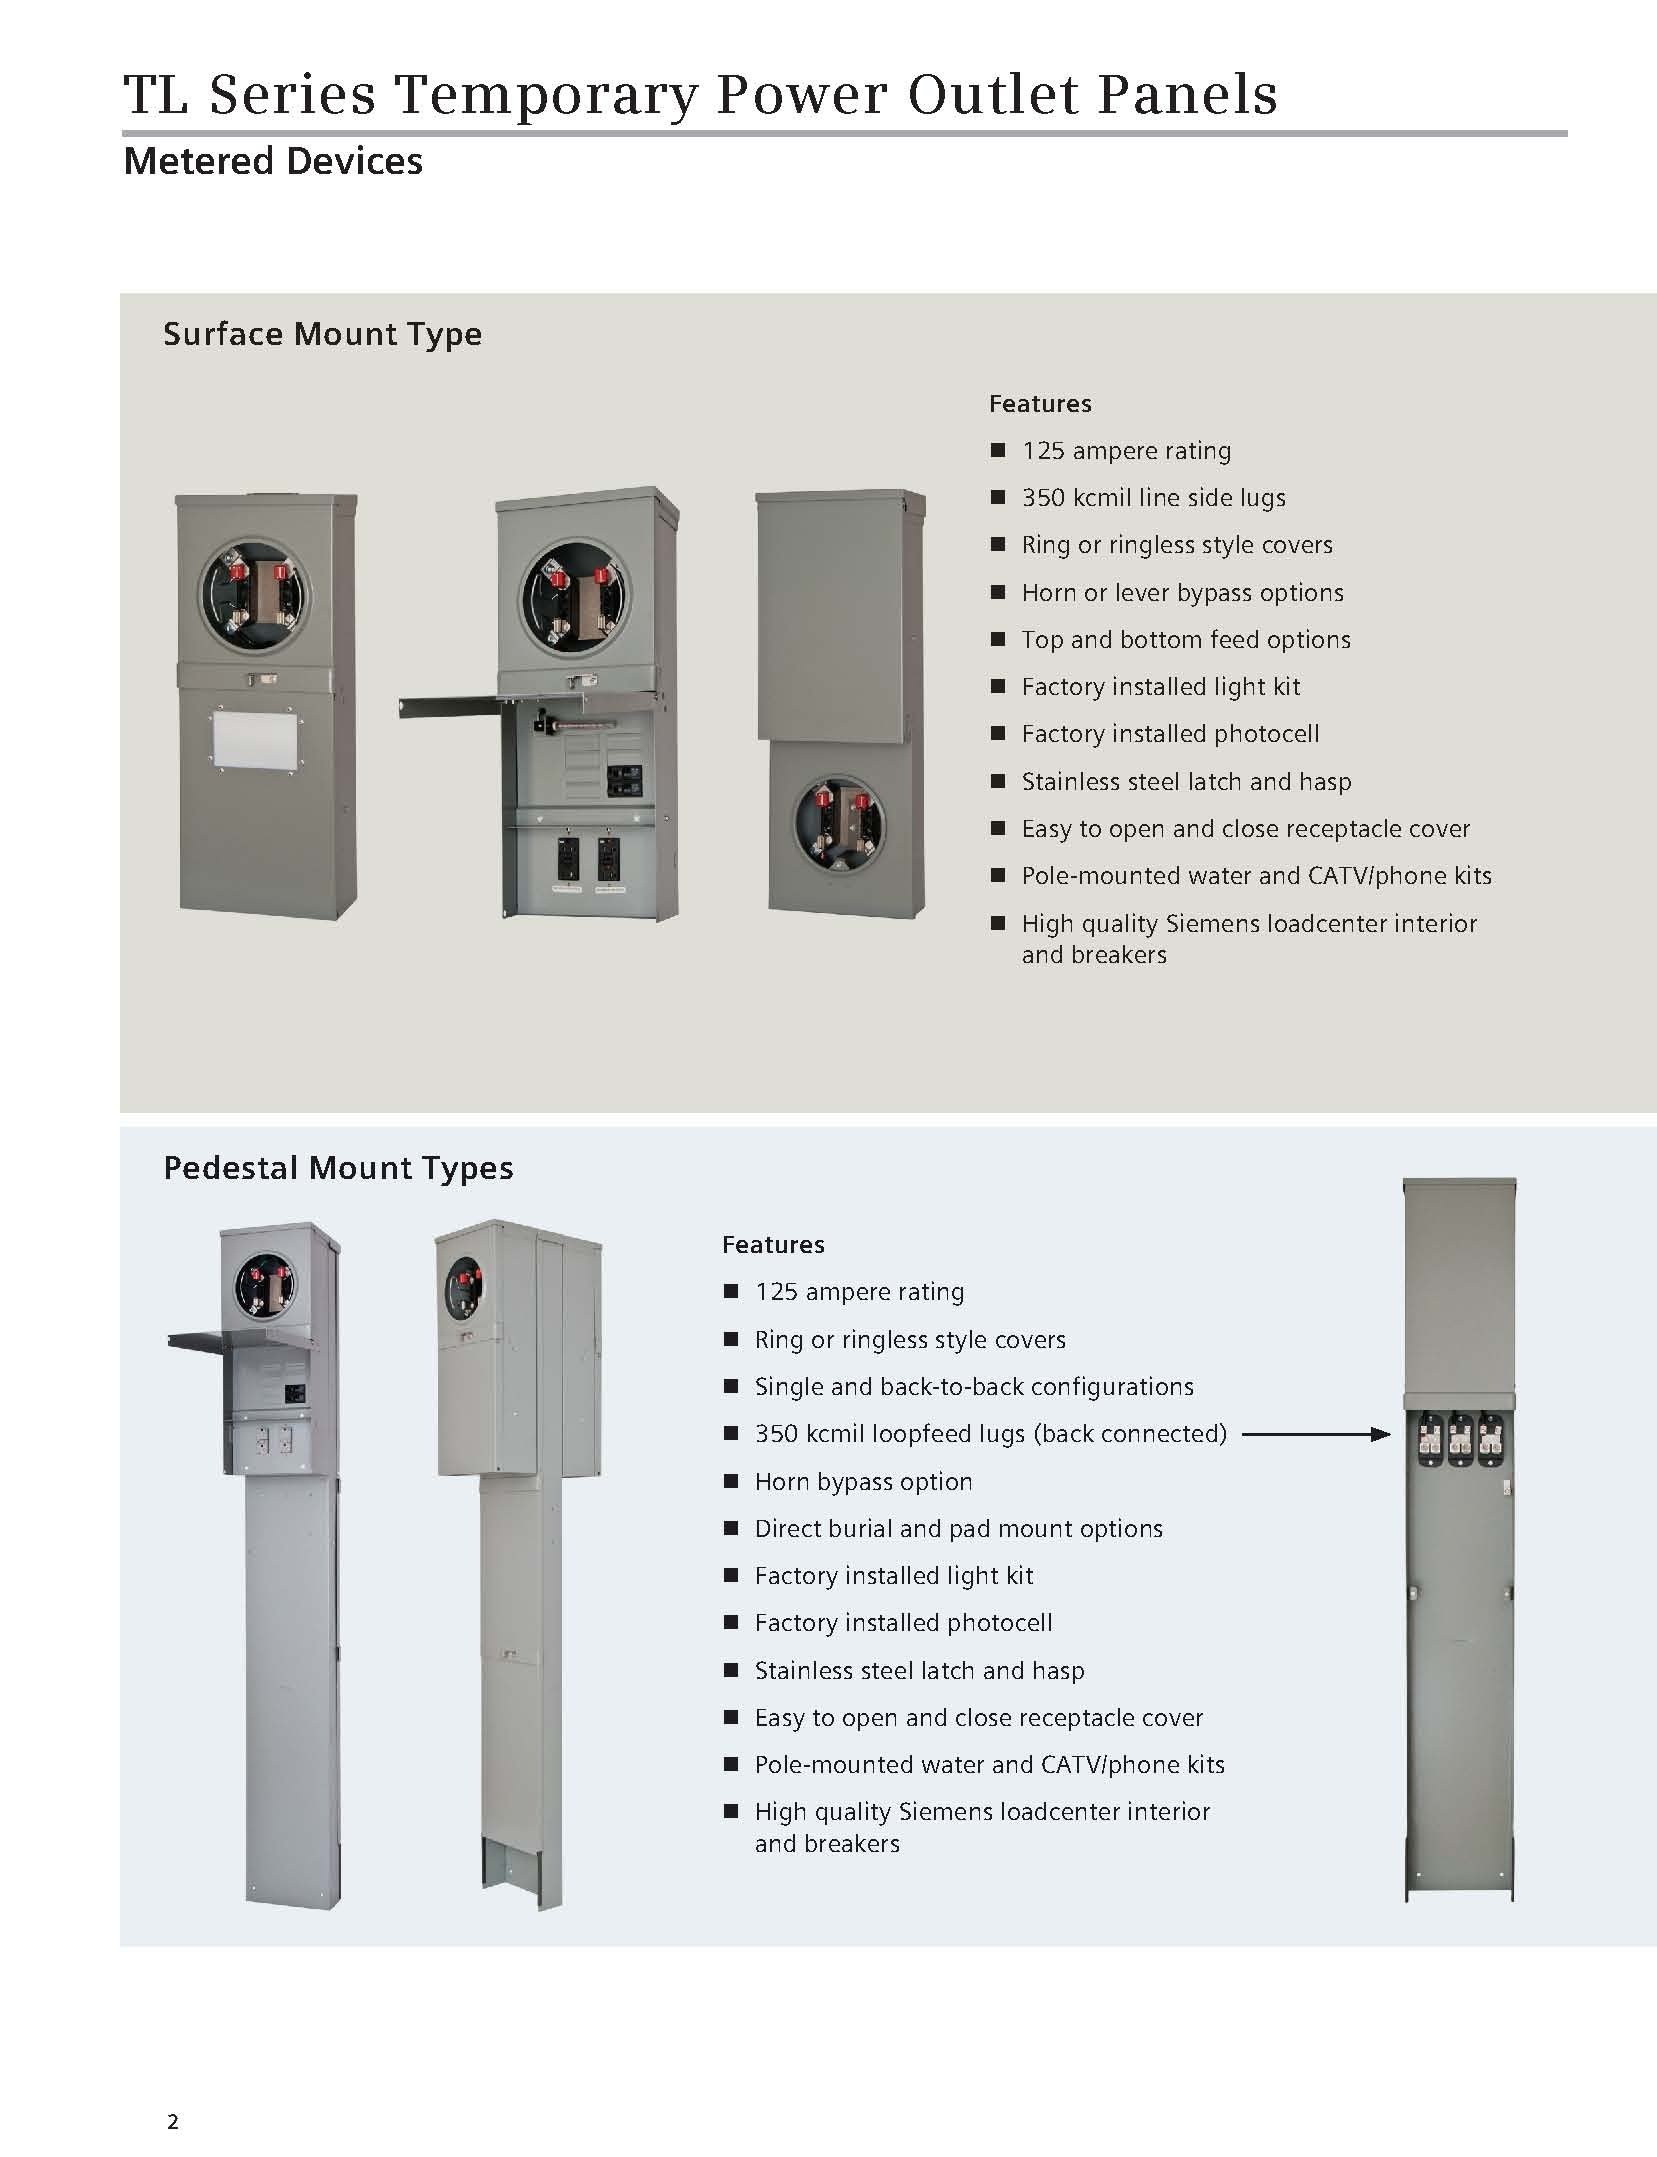 Siemens TL137RT Talon Temporary Power Outlet Panel with a 20, 30, and 50-Amp Receptacle Includes a Top Fed, Ringless Type, Meter Socket Provision by Siemens (Image #4)